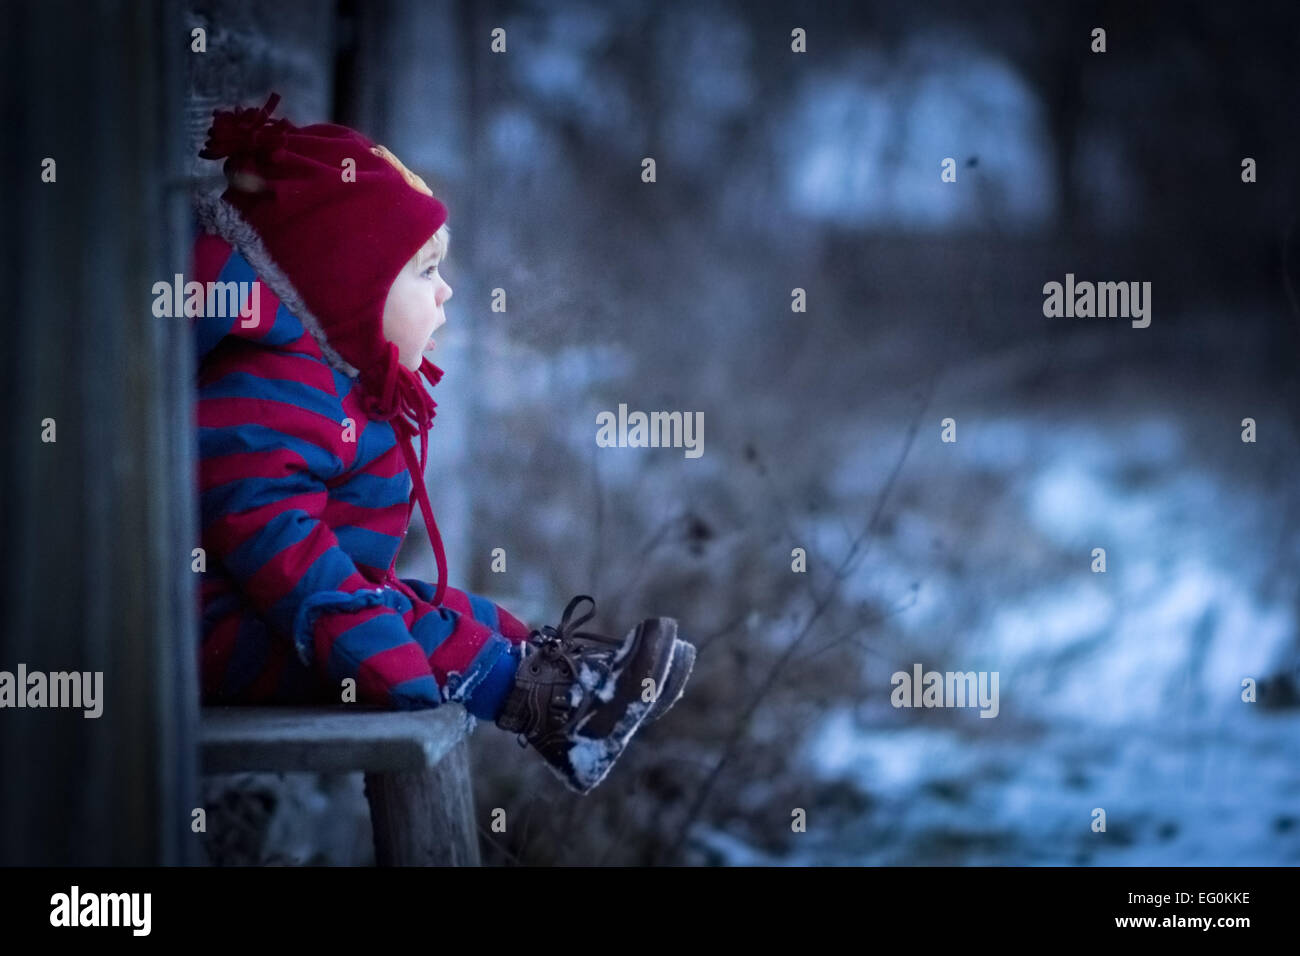 Young boy sitting on bench outside - Stock Image